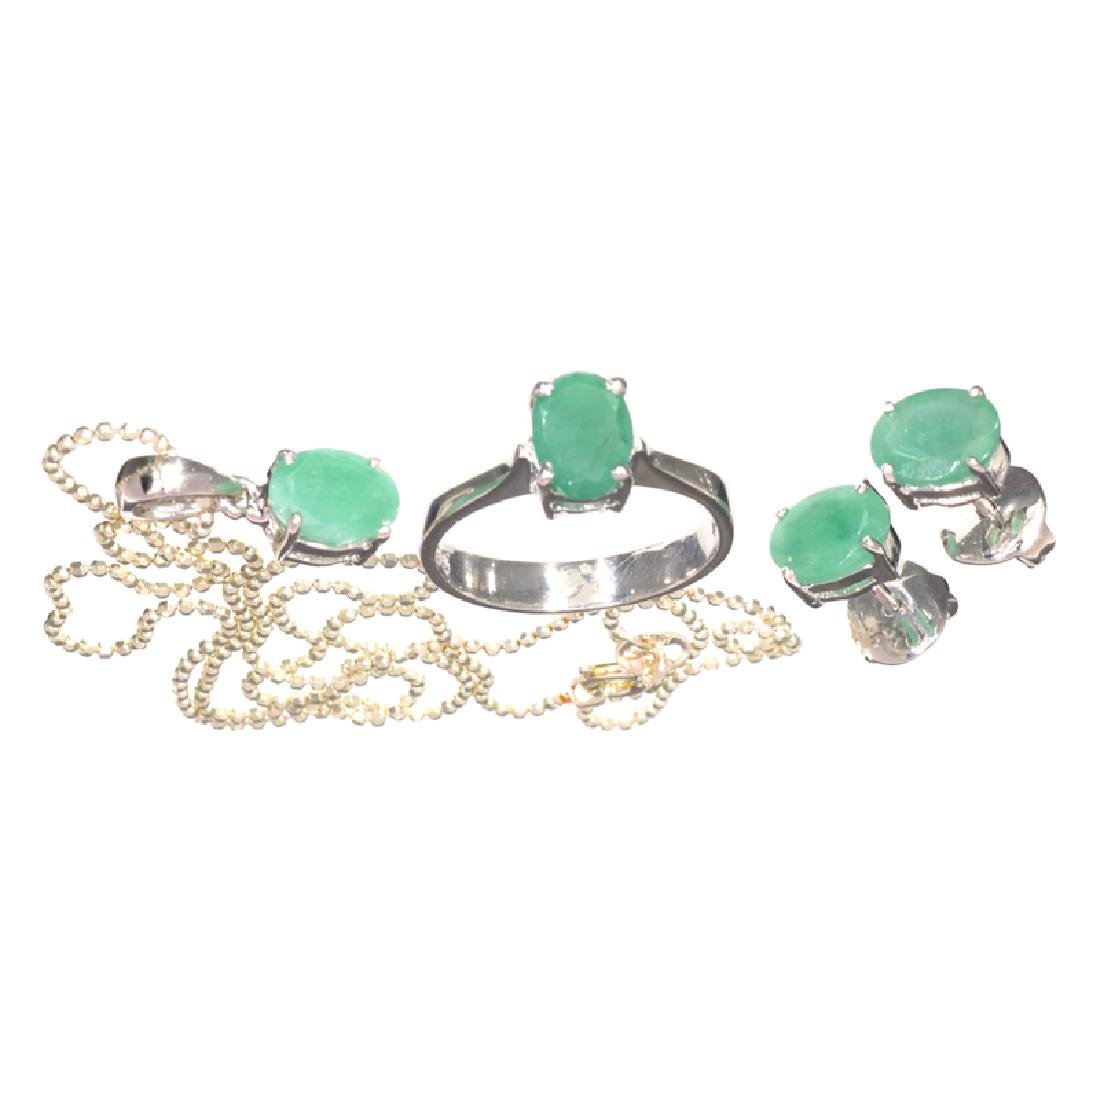 Fine Jewelry 3.96CT Oval Cut Green Emerald And Sterling